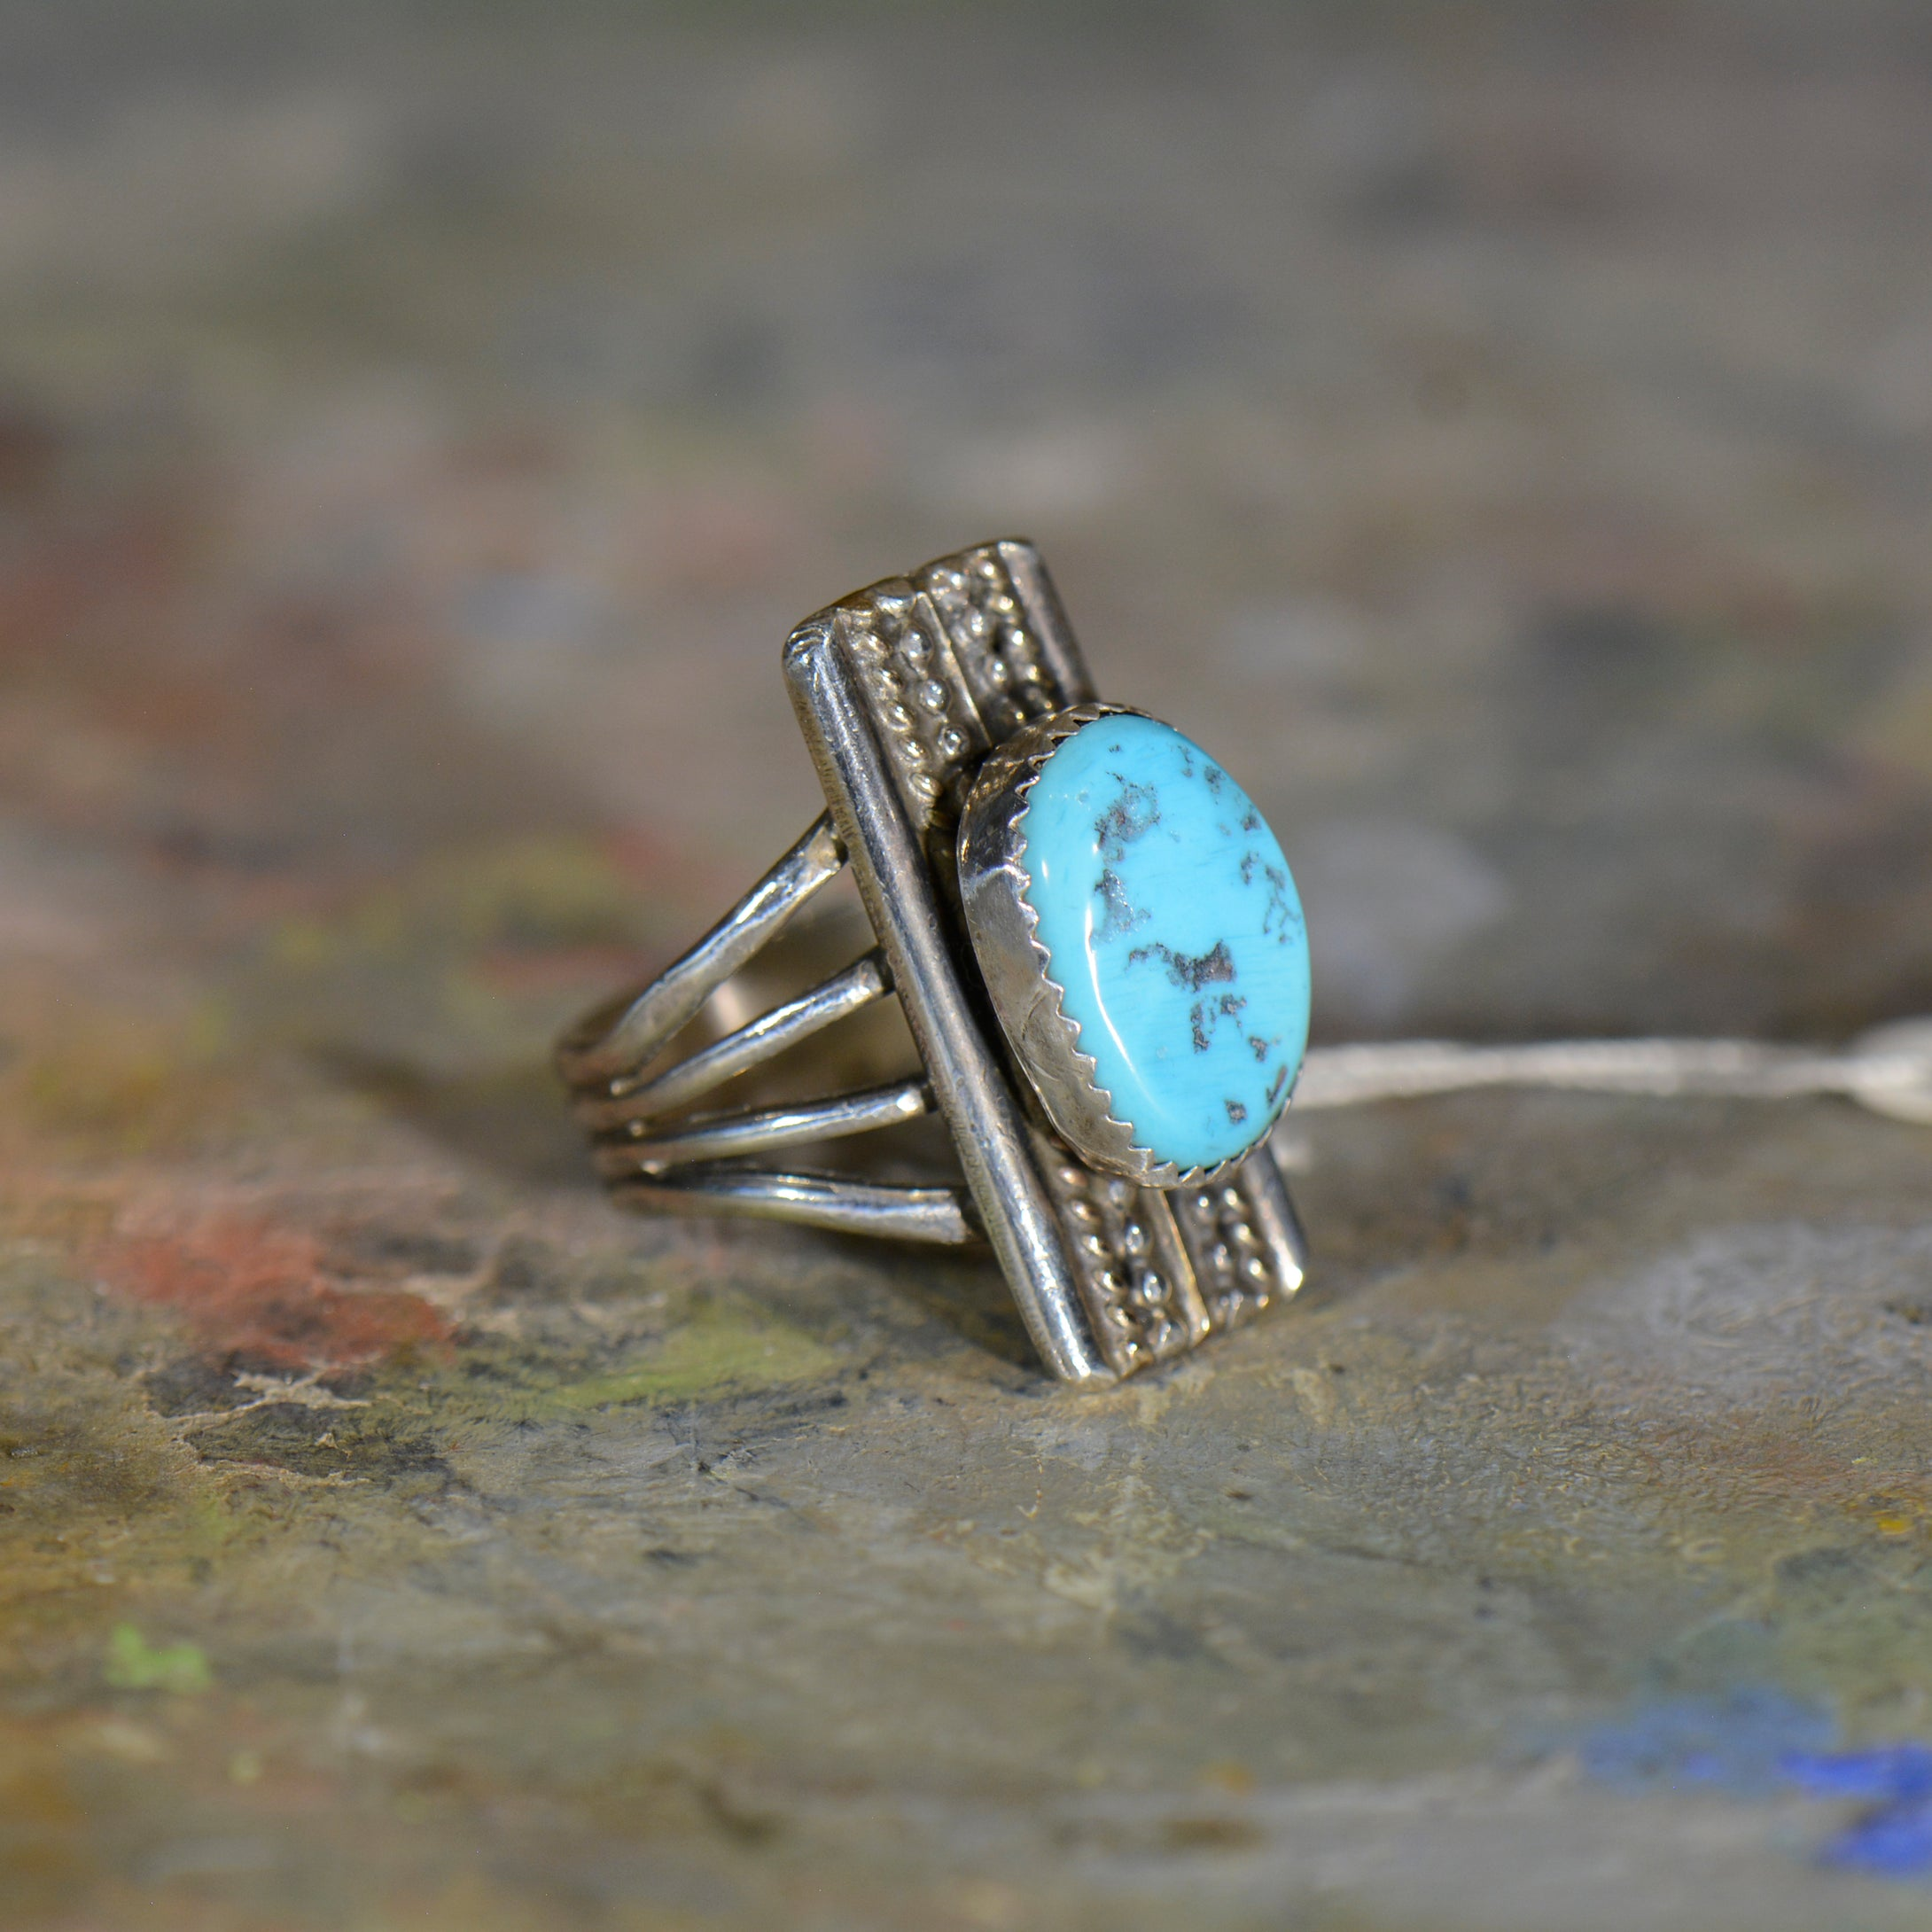 Vintage silver and turquoise ring. Size 7.5